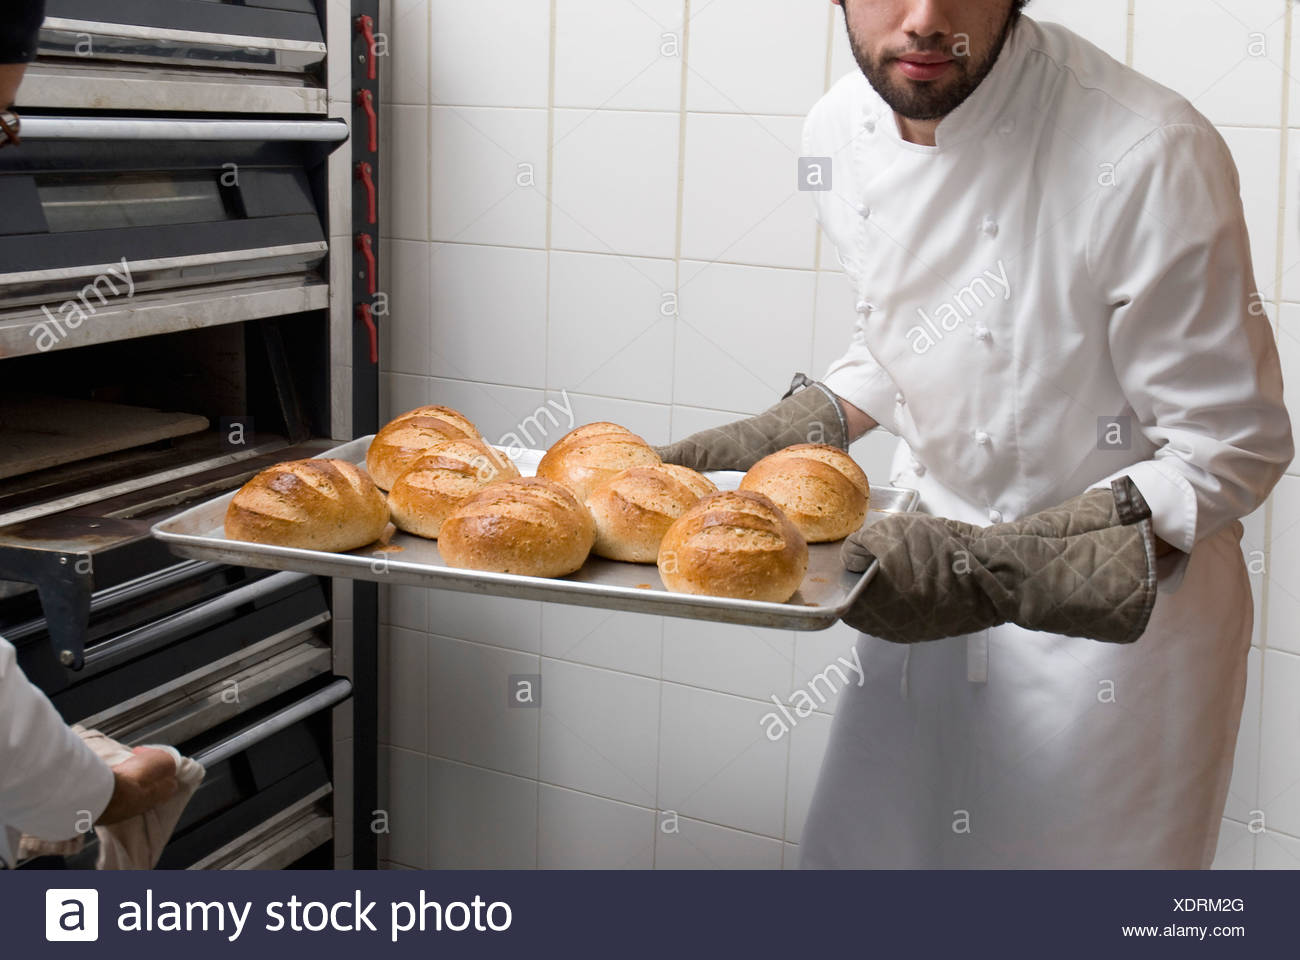 Cook taking the bread loaves out of the oven - Stock Image